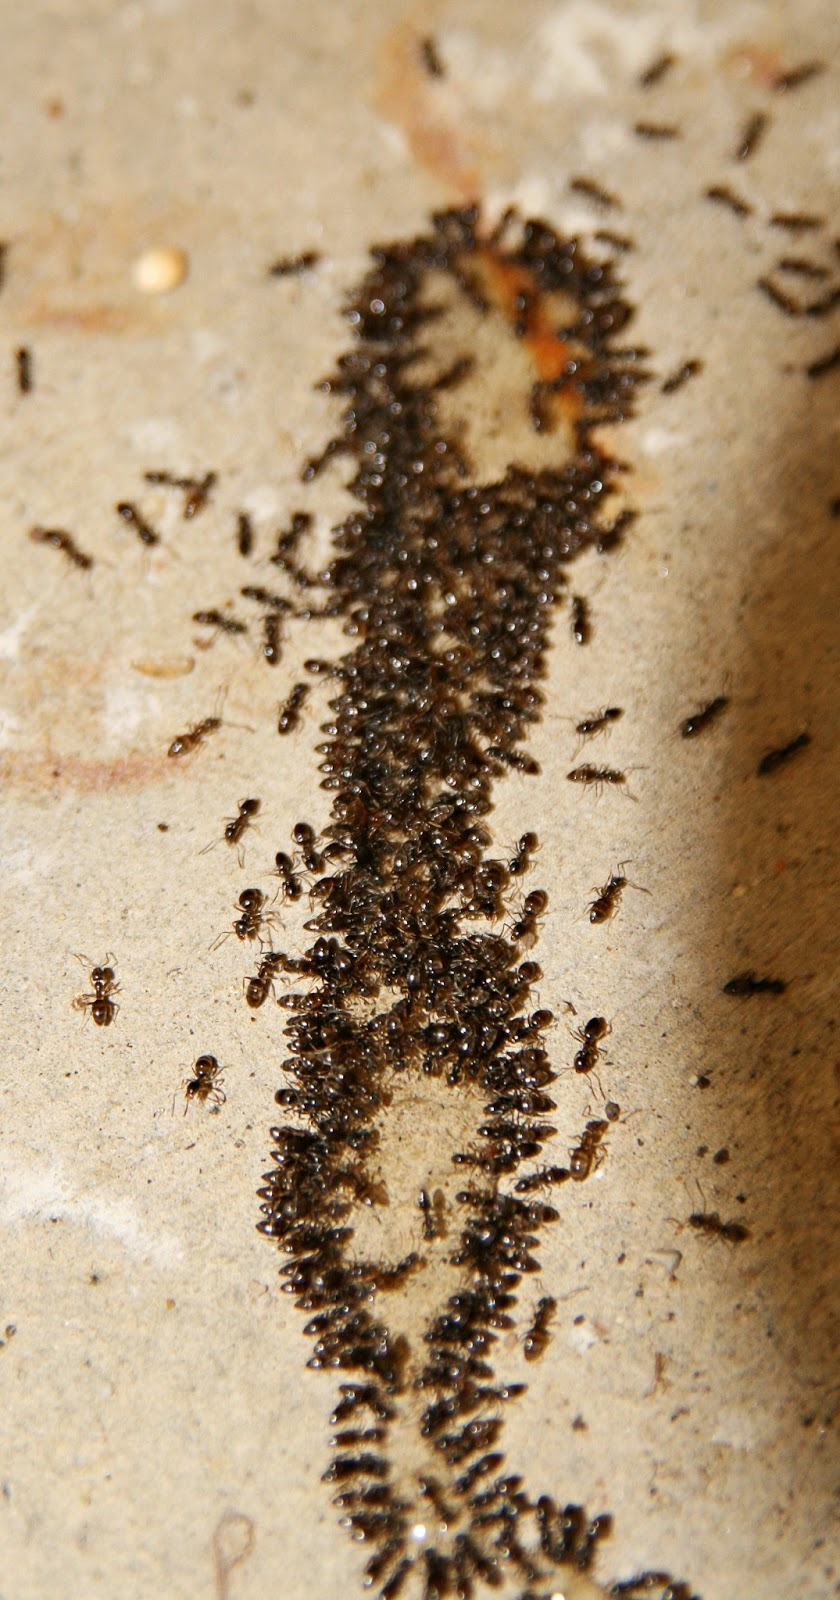 I have ants in my house - I Called Pest Control No Matter What I Did They Would Not Go Away And I Was Not Willing To Buy Some Recommended Products As They Are Harmful For Pets And